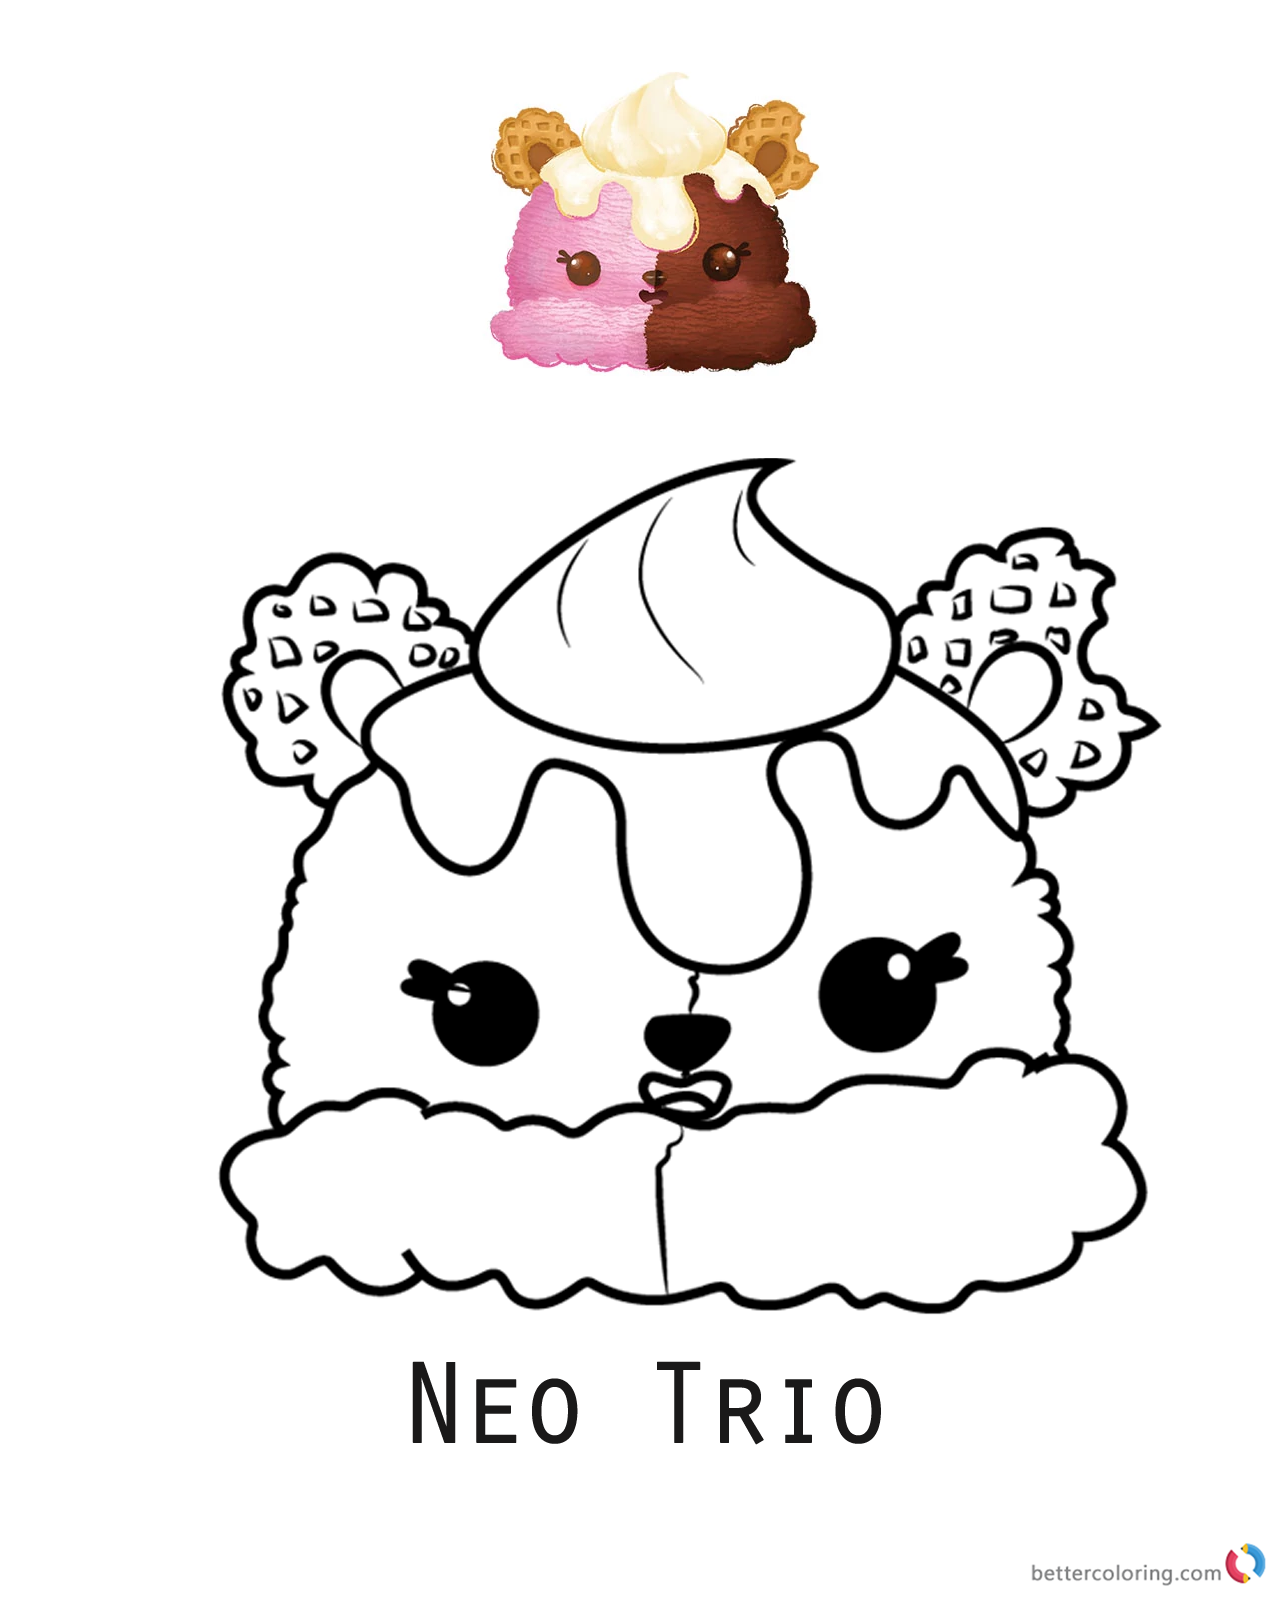 num noms coloring pages free - num noms coloring pages neo trio free printable coloring